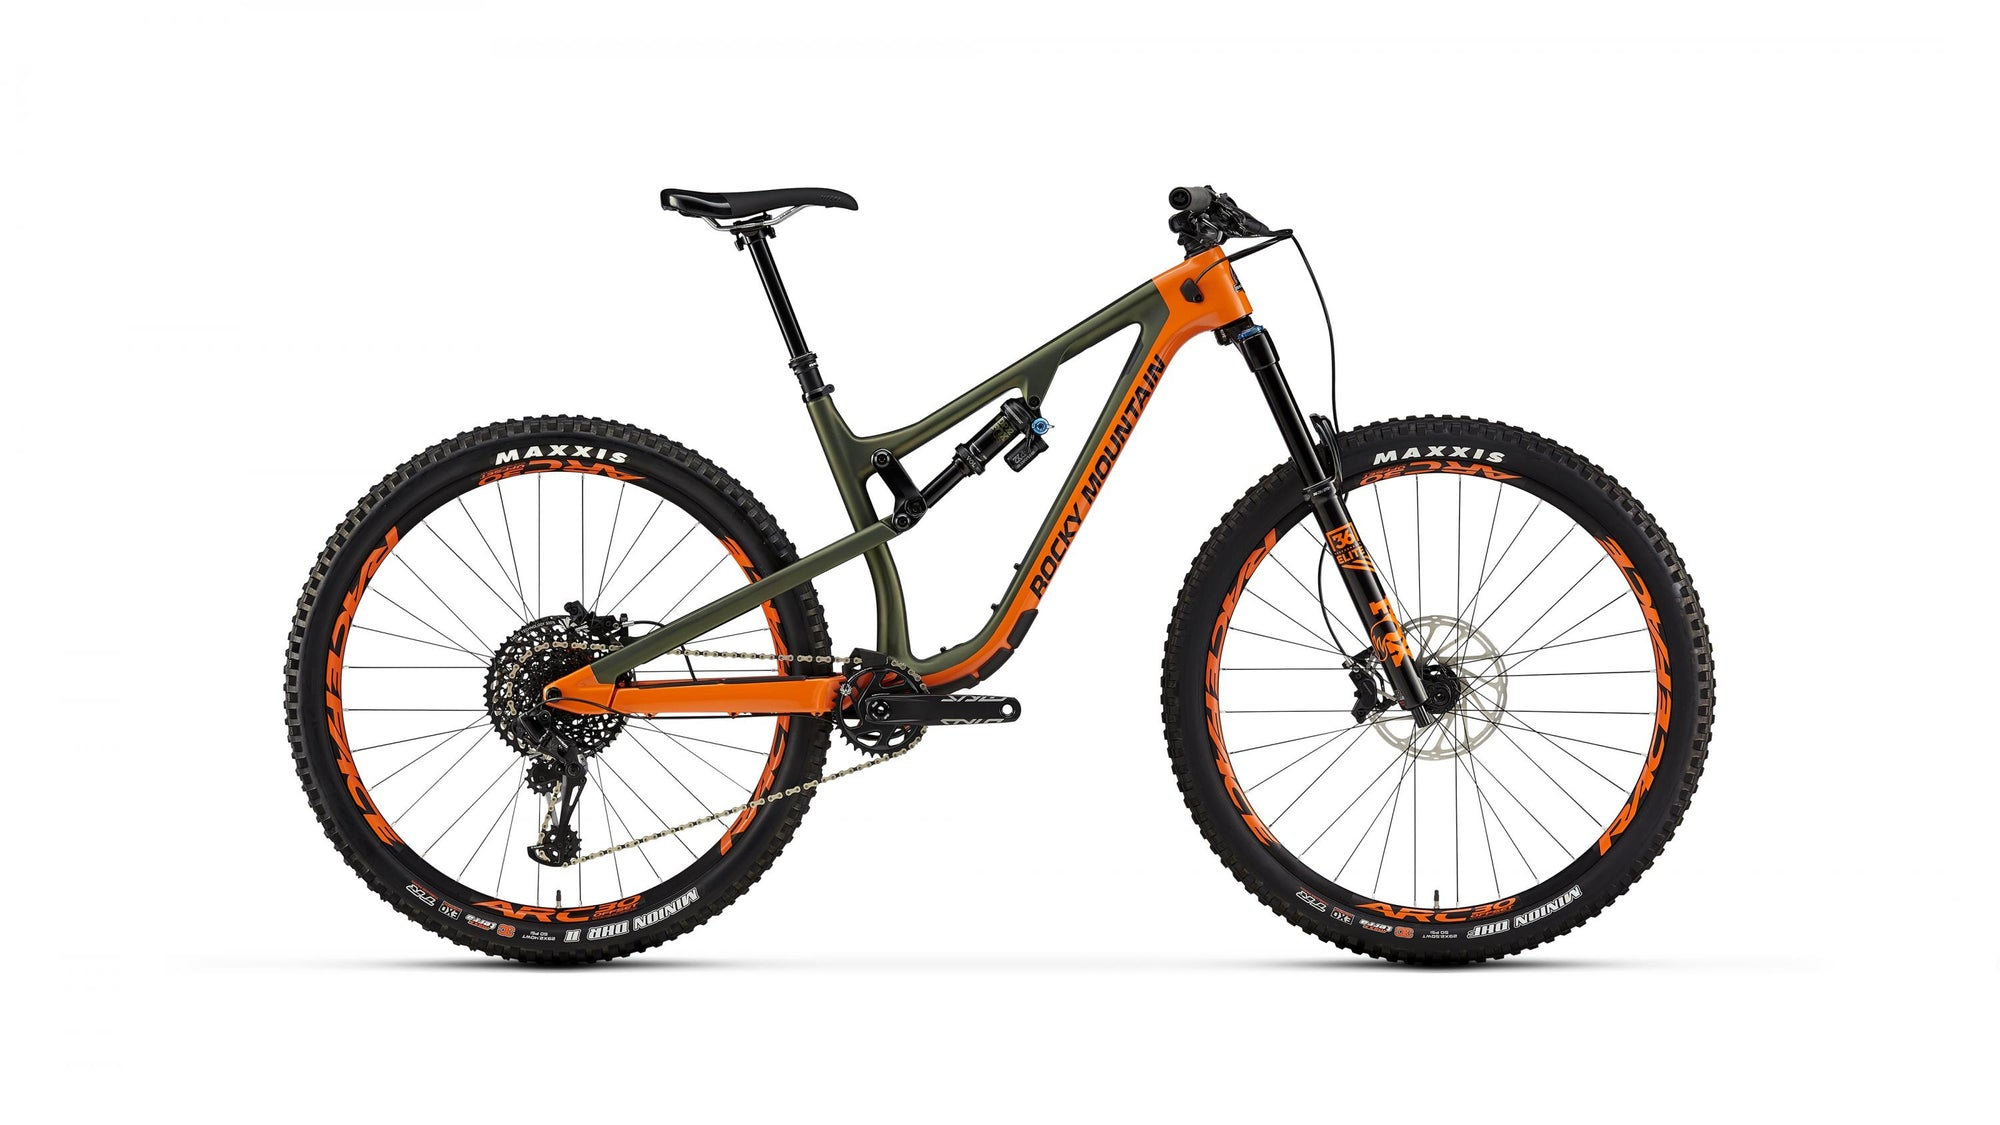 Rocky Mountain Instinct Carbon 90 BC Edition 165 - 172.5cm (SM) - TUNE cycles